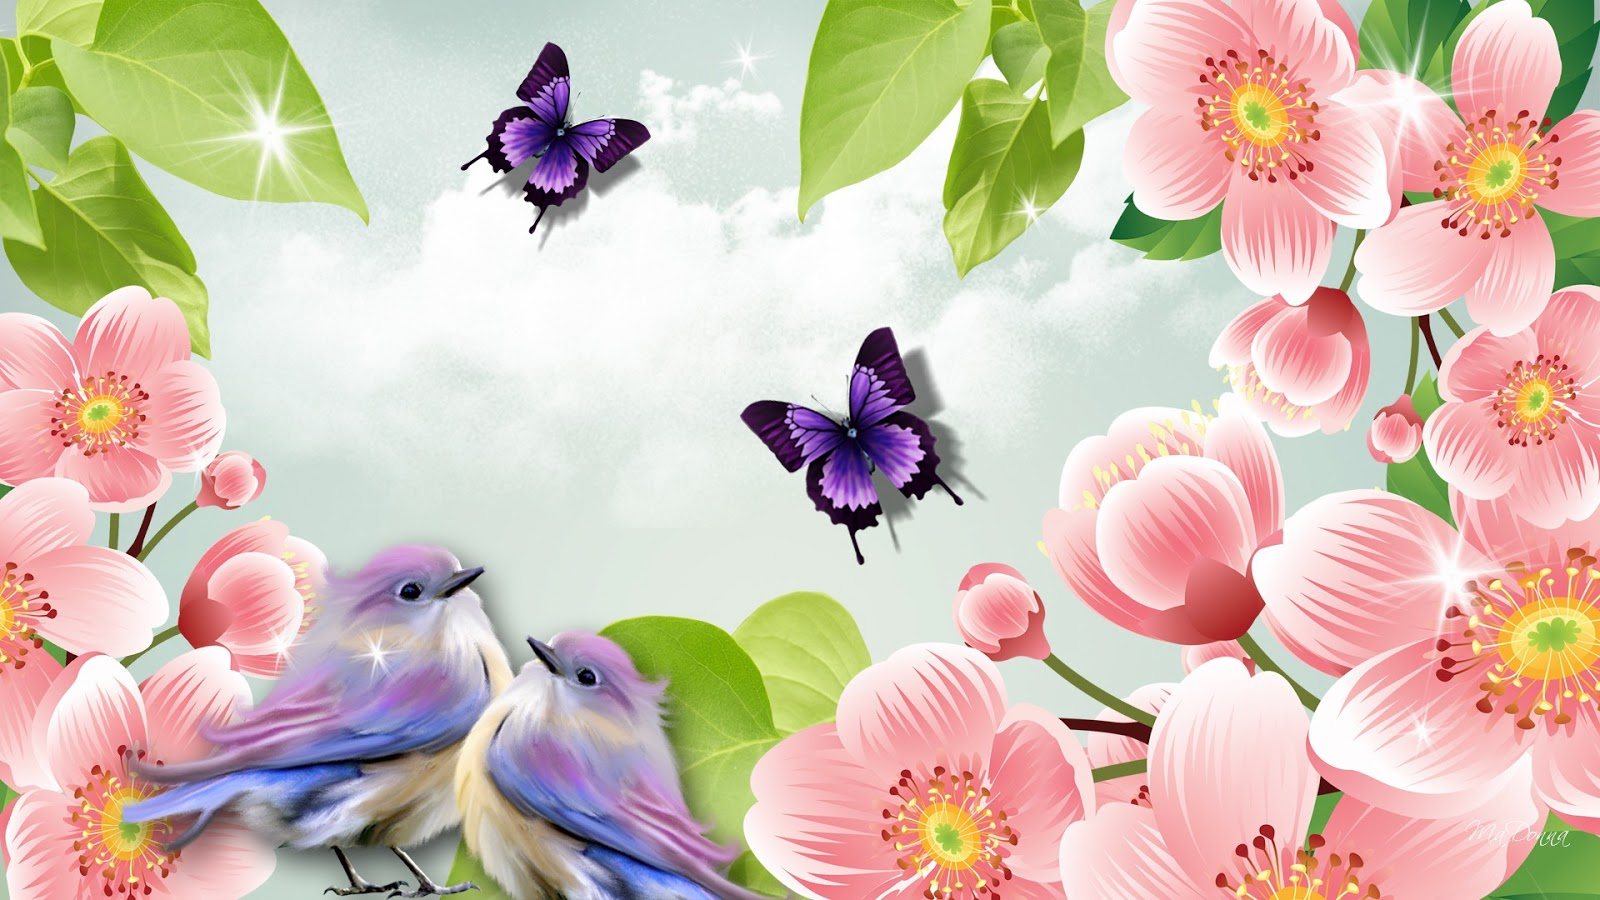 Happy Spring Day Wallpapers Gallery 1600x900